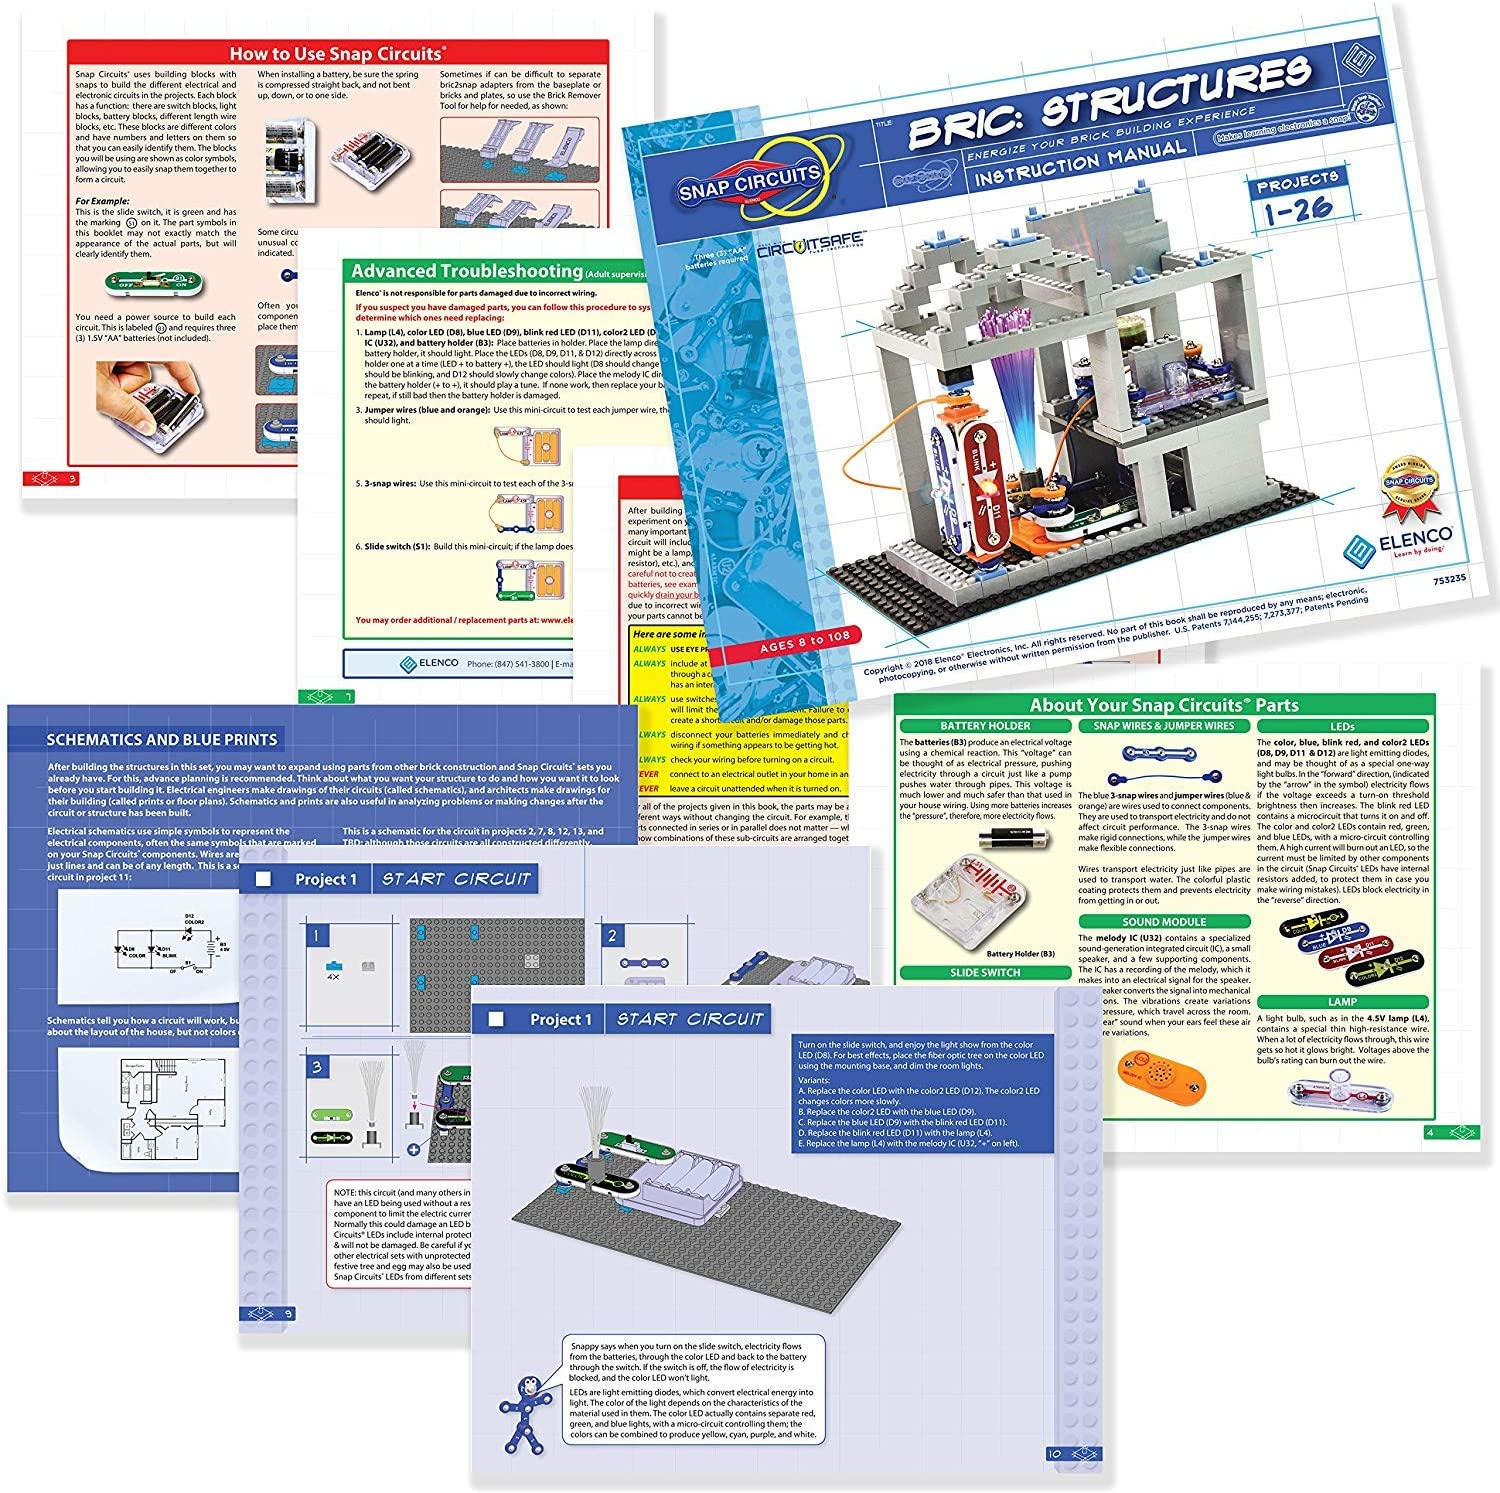 Snap Circuits Bric Structures sample projects